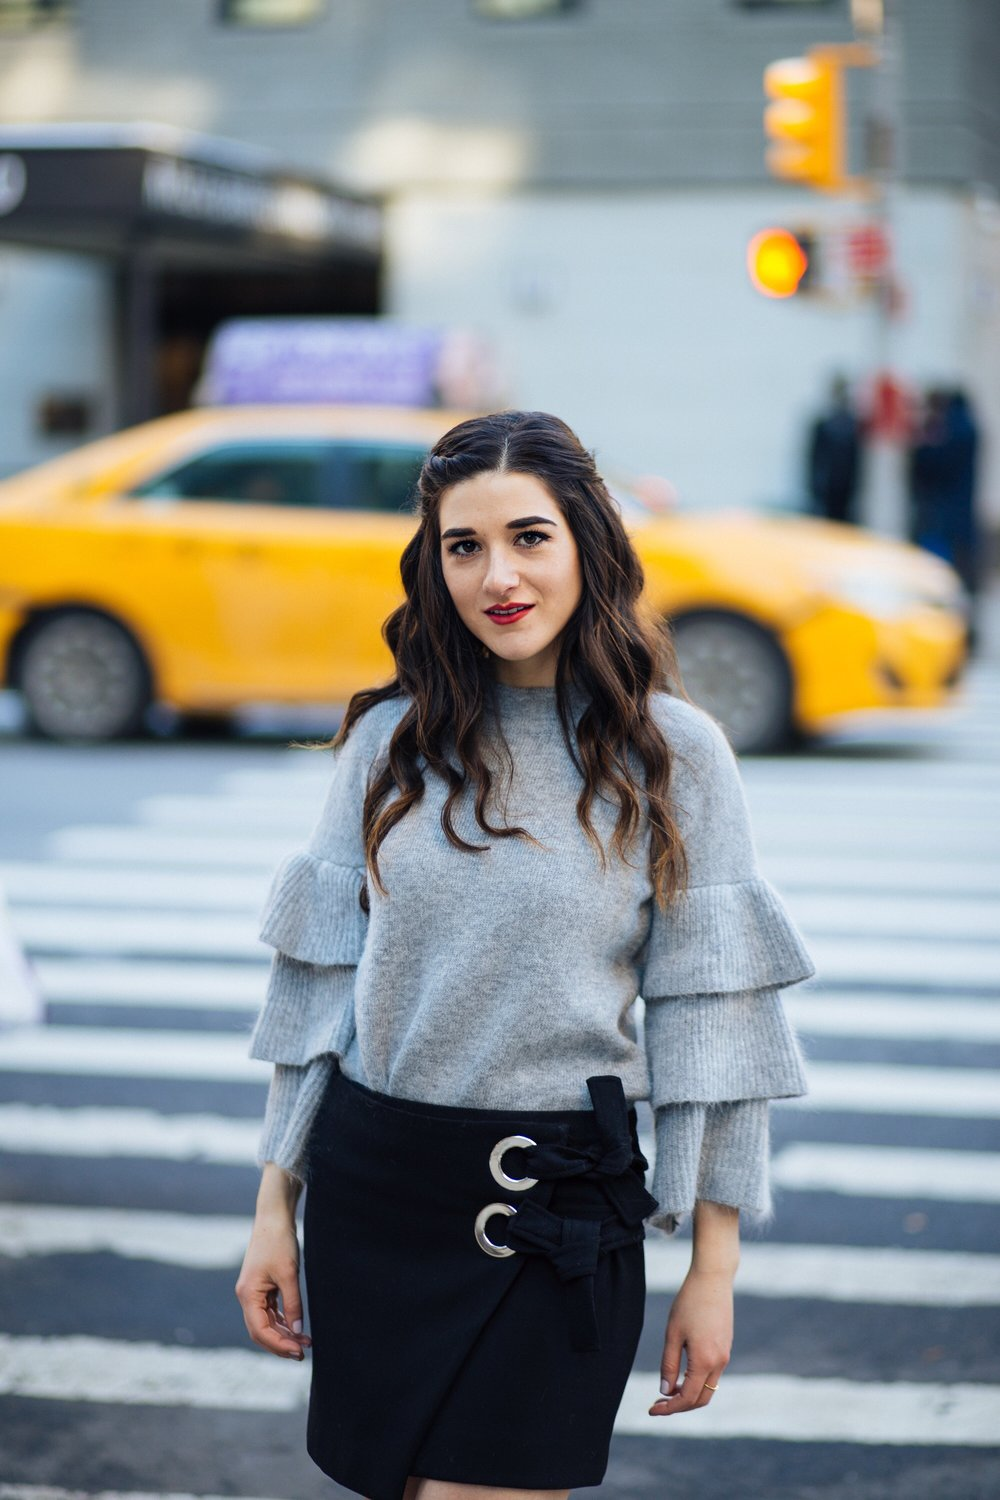 Grey Ruffle Sleeve Sweater Shop Trescool Fall Winter Esther Santer Fashion Blog Louboutins & Love NYC Street Style Blogger Outfit OOTD Trendy Hair Girl Women Trendy Online Shopping Zara Wear Stylish Fashionista Beauty Photoshoot Women Black Mini Skirt.JPG